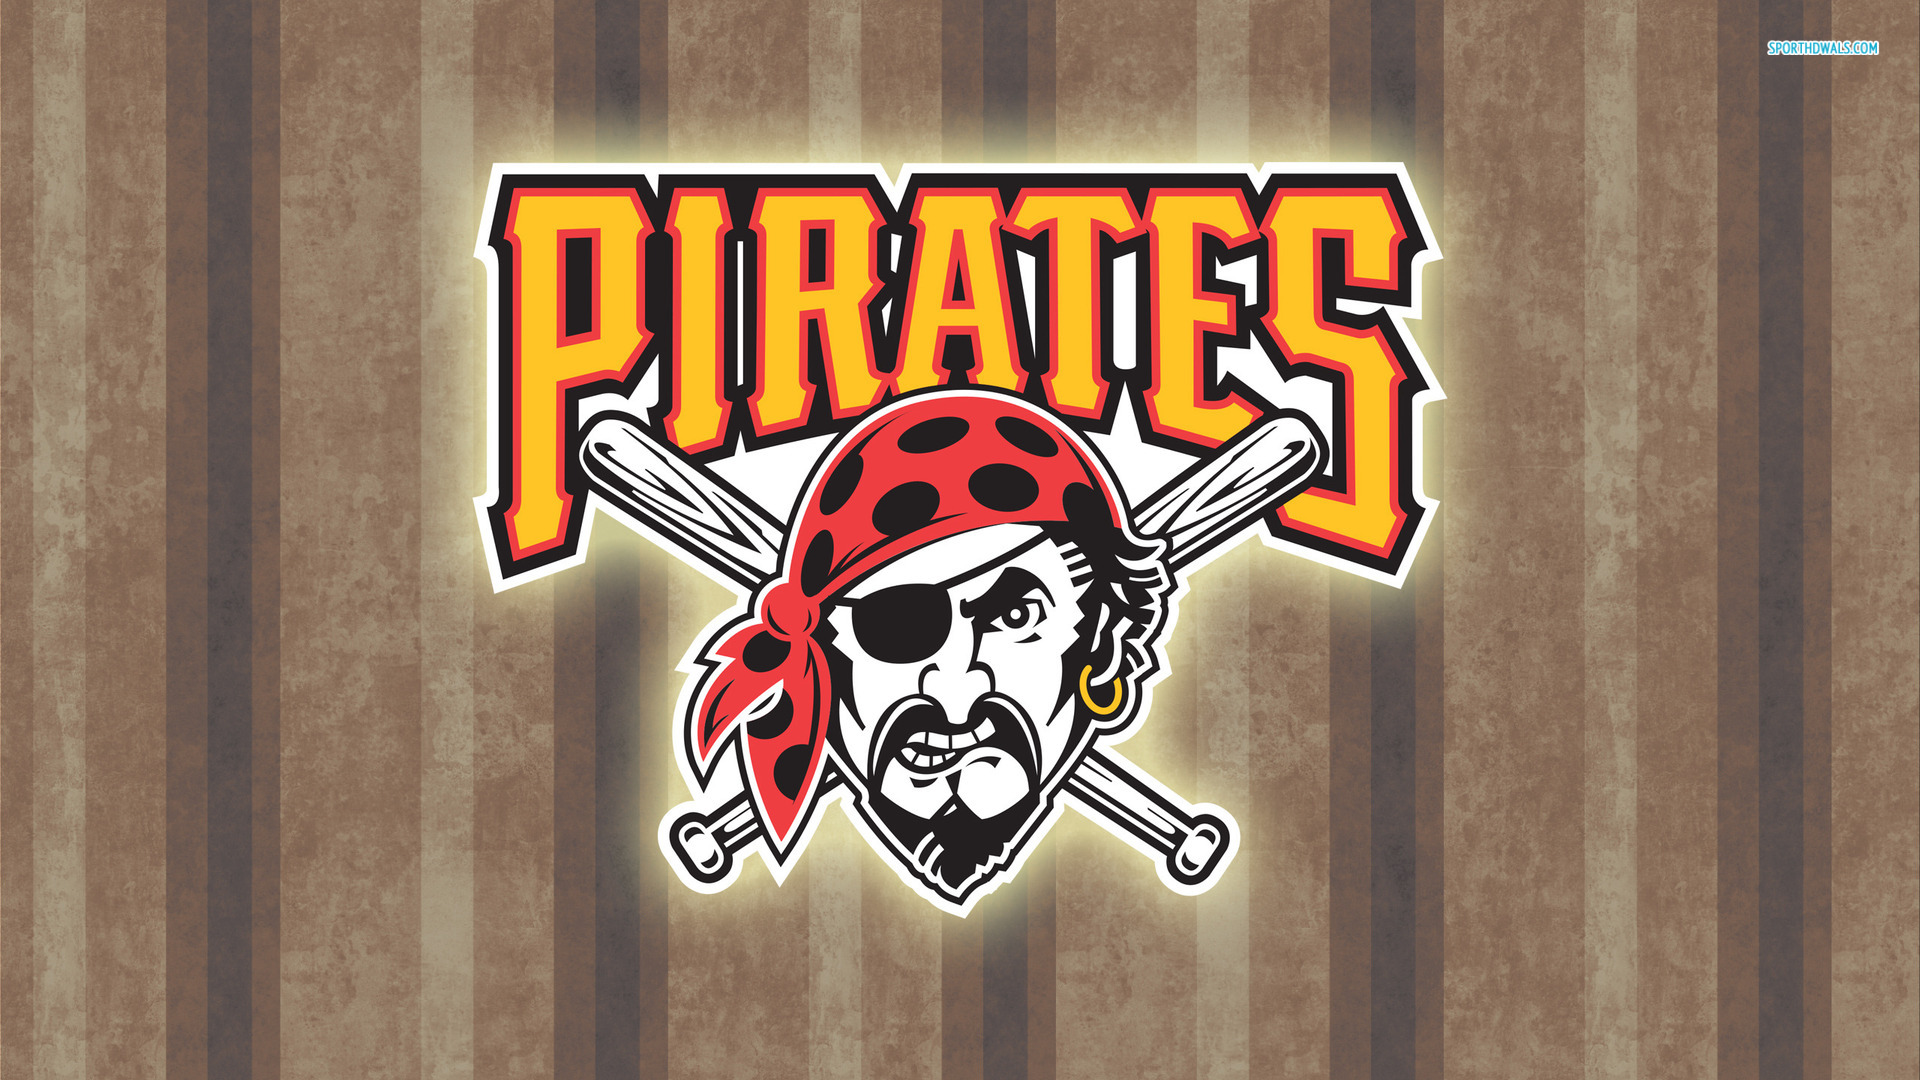 PITTSBURGH PIRATES baseball mlb rq wallpaper background 1920x1080